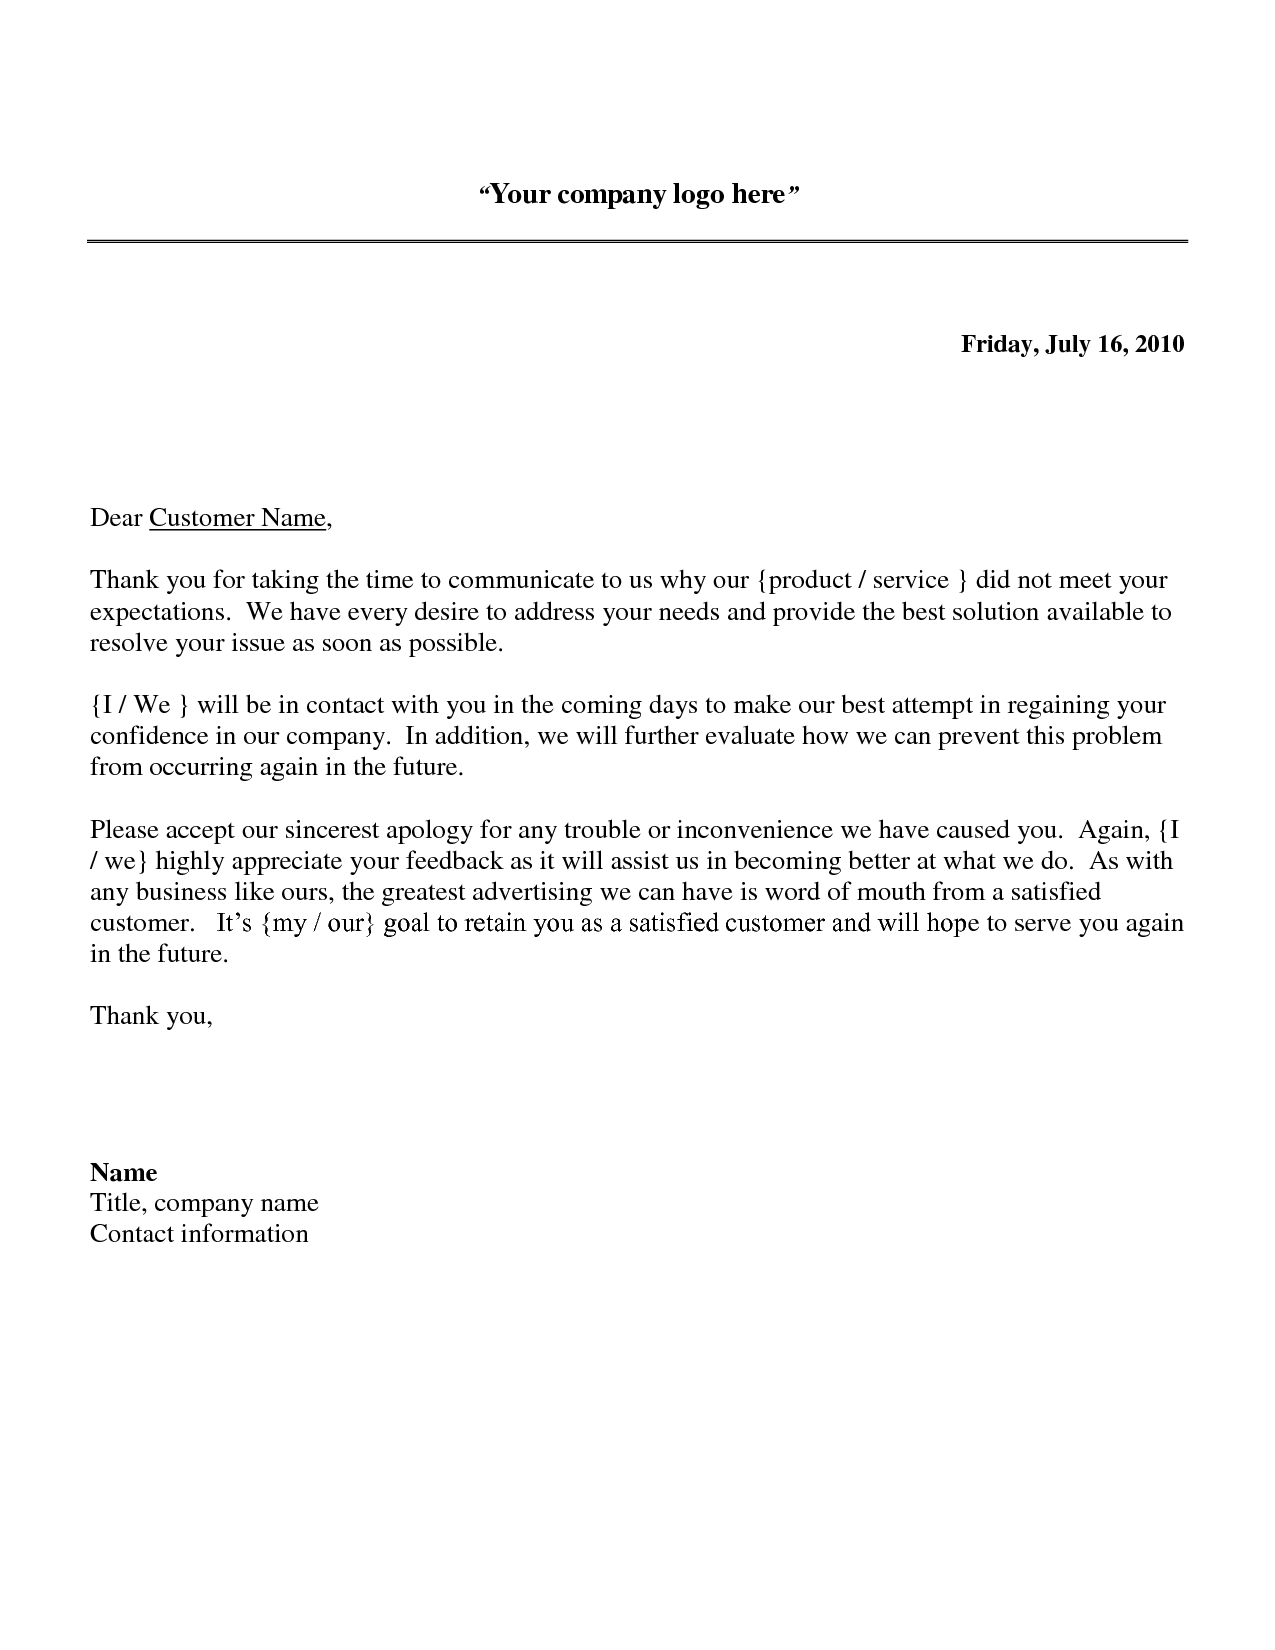 Business Apology Letter Sample Download As DOC Images FrompoLetter